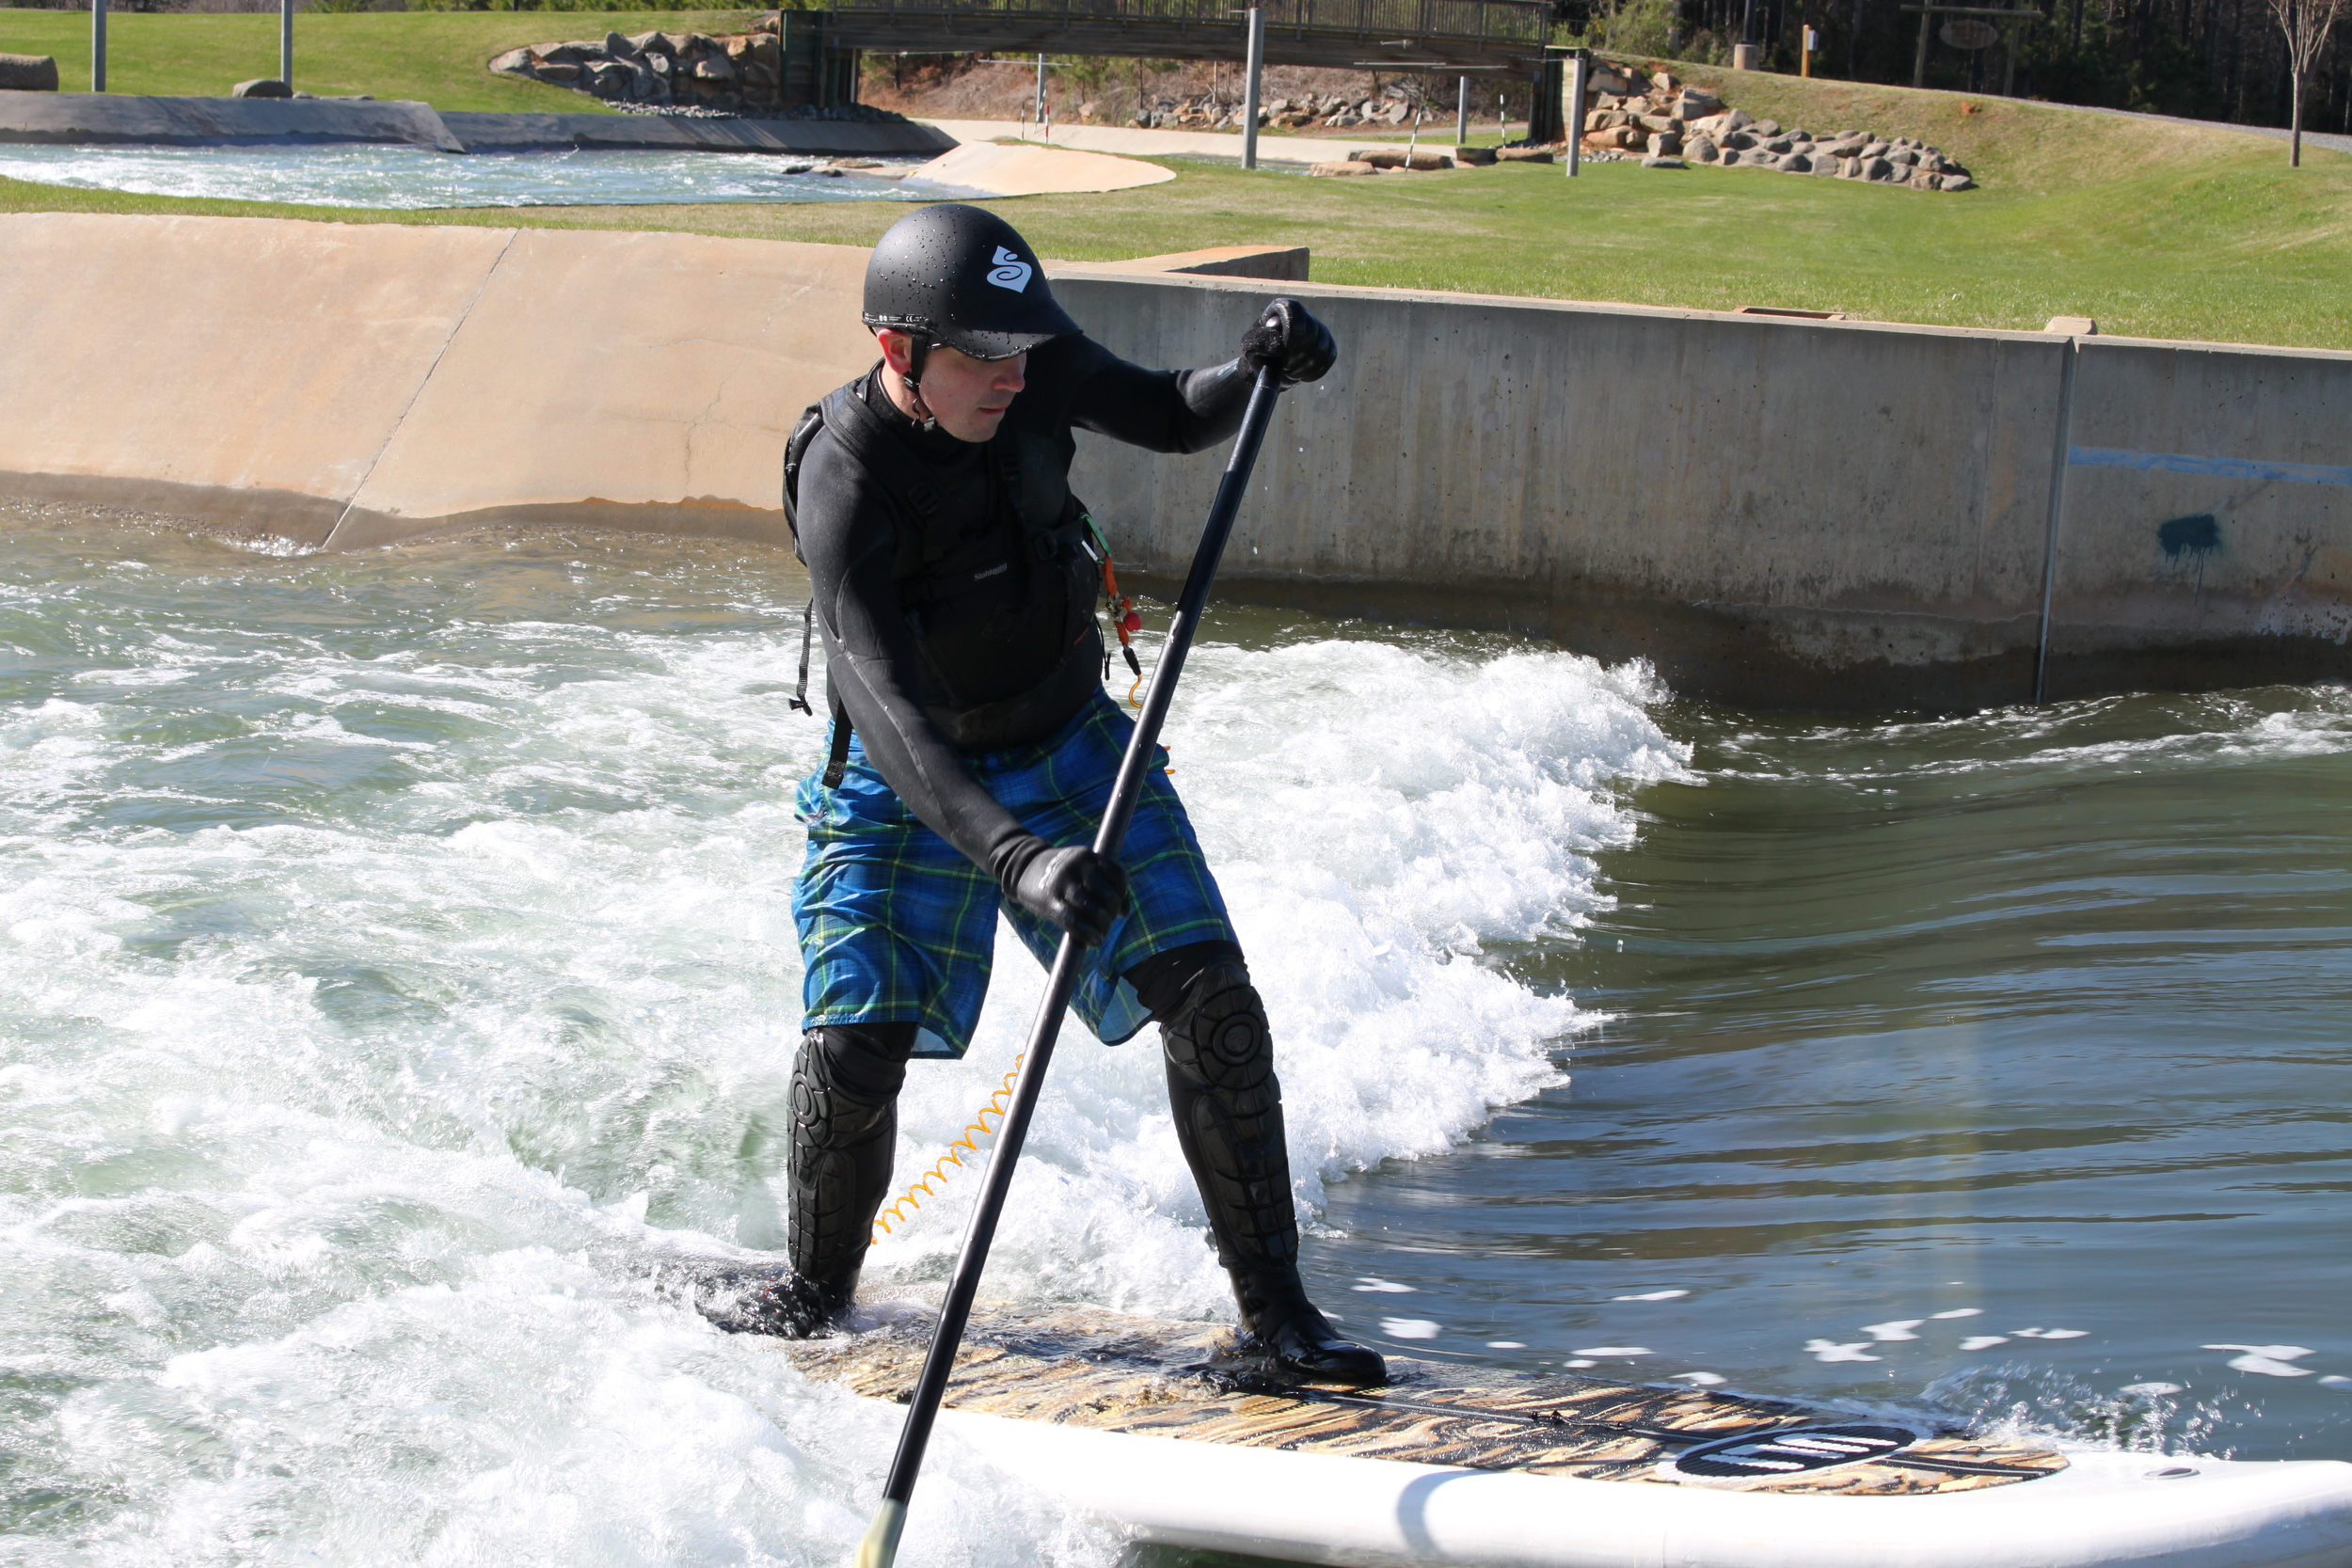 Andy May finding the sweet spot on Entrance Wave